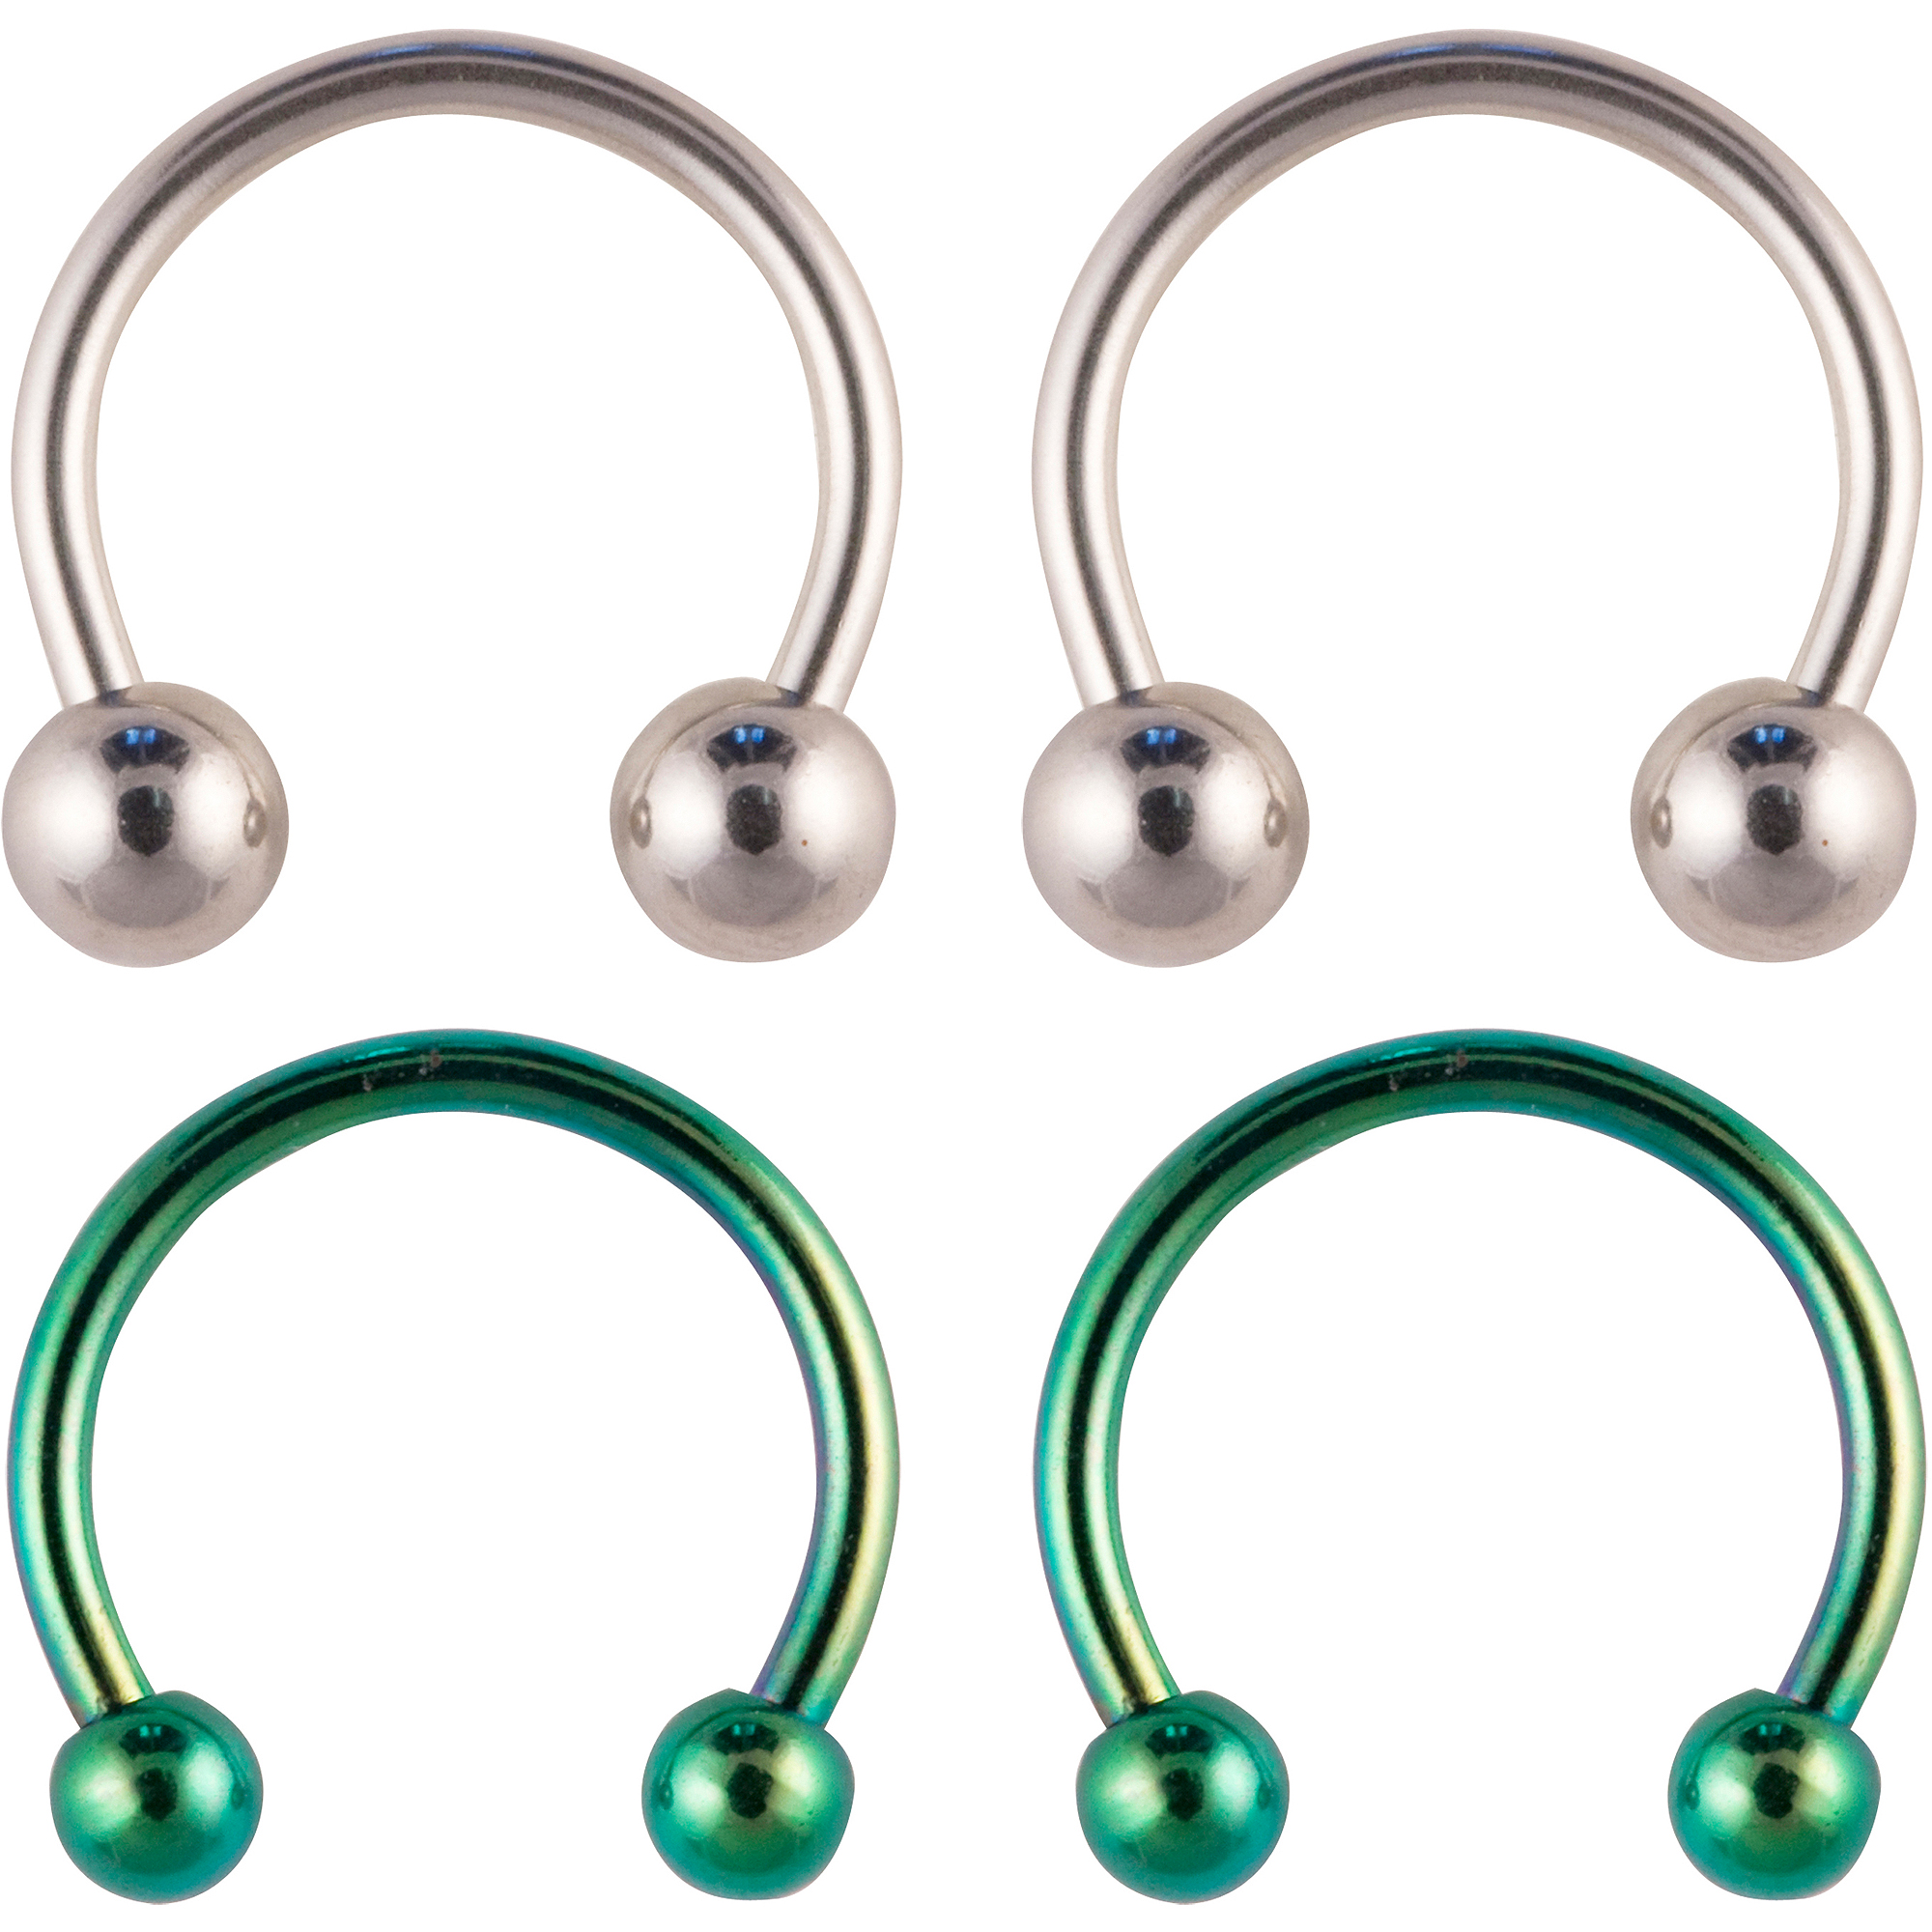 Hotsilver Body Jewelry 2 Pack - 16G Surgical Steel Horseshoes - Multi-Colored